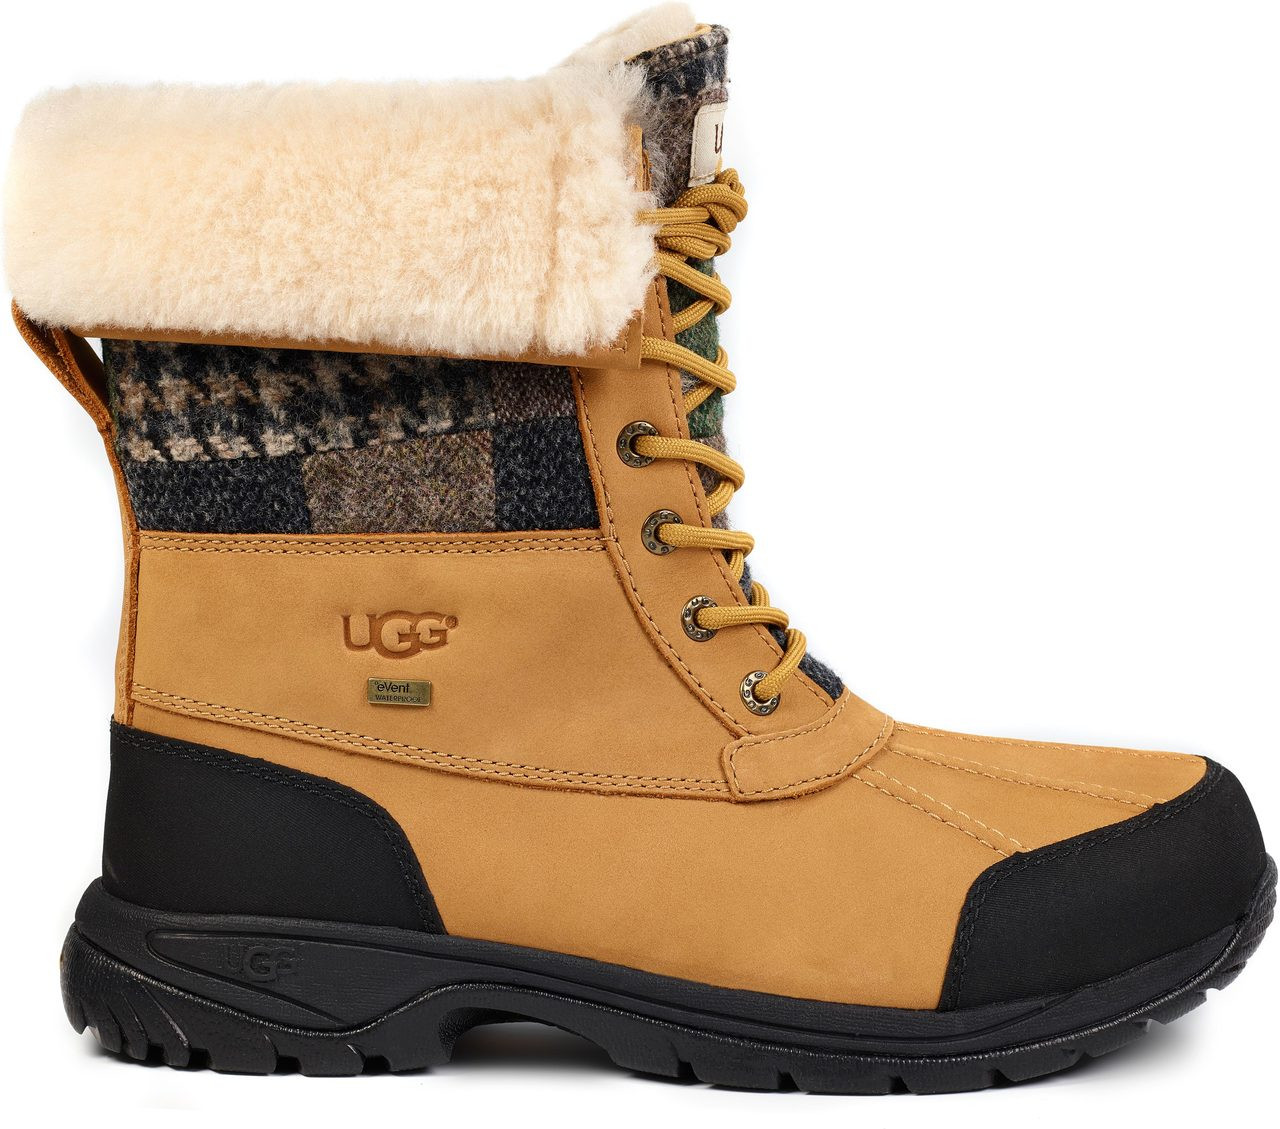 ... UGG Men's Butte Patchwork. Wheat